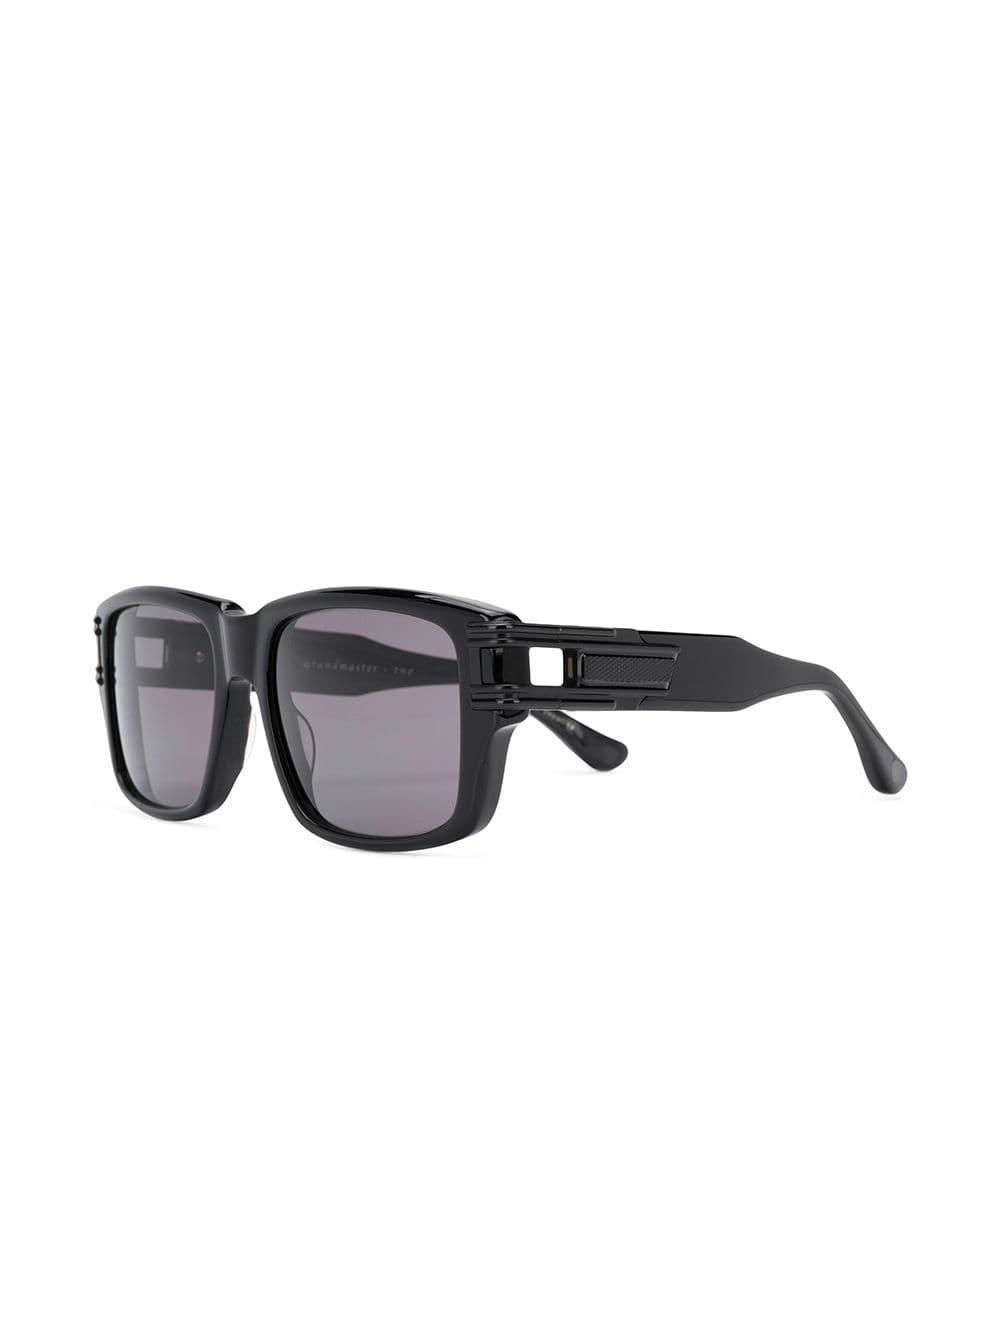 67ec7ee5e04f Dita Eyewear Square Tinted Sunglasses in Black - Lyst